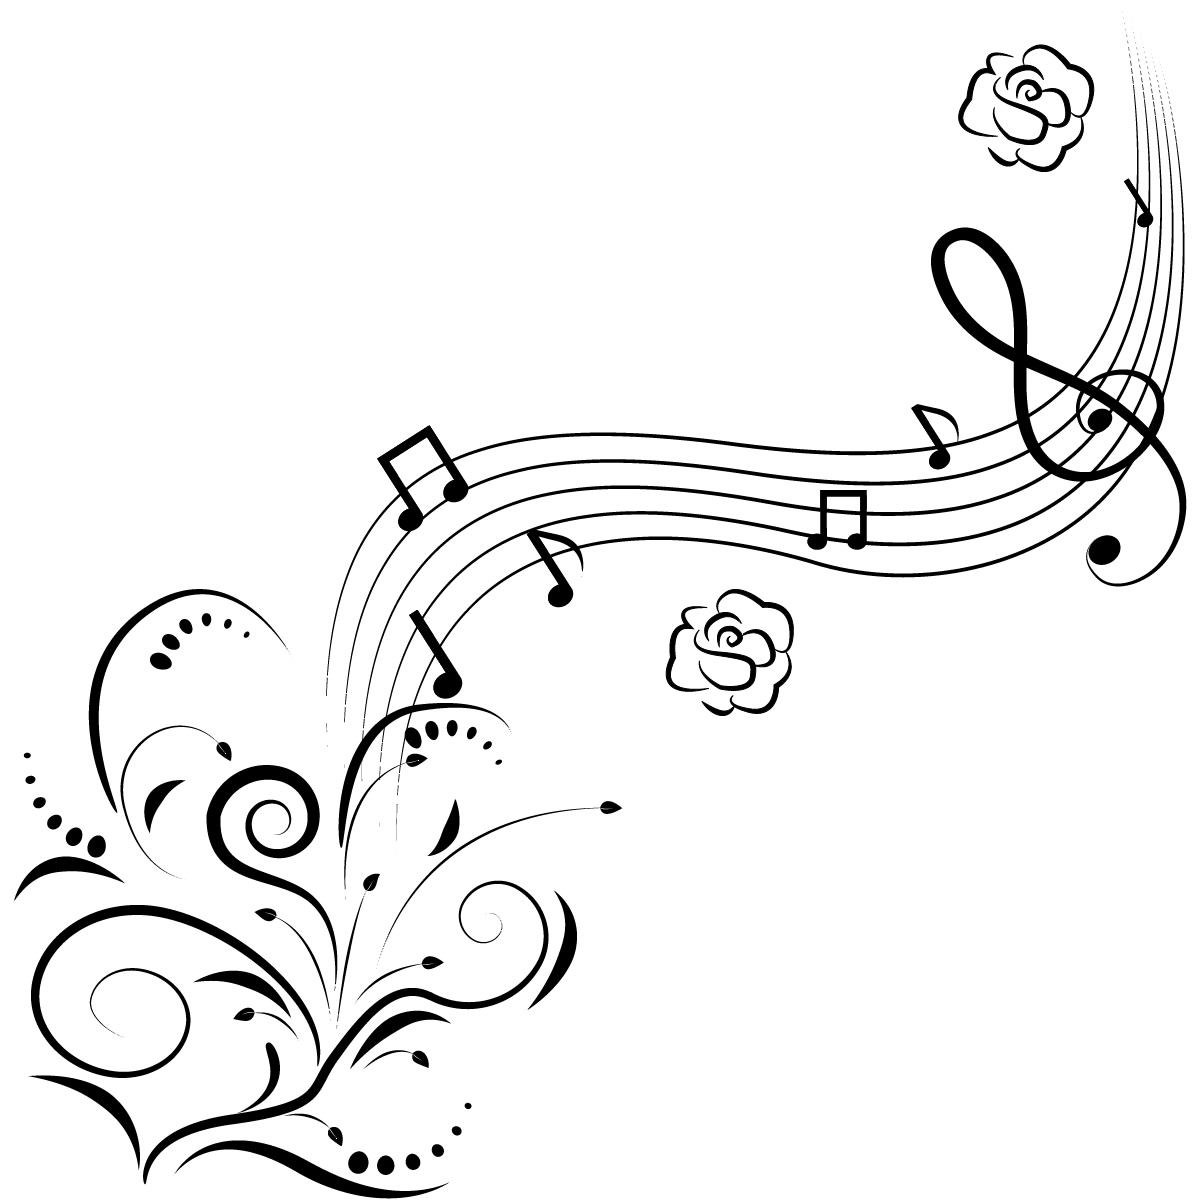 1200x1200 Cool Music Design Drawings Music Notes Clip Art Music Notes